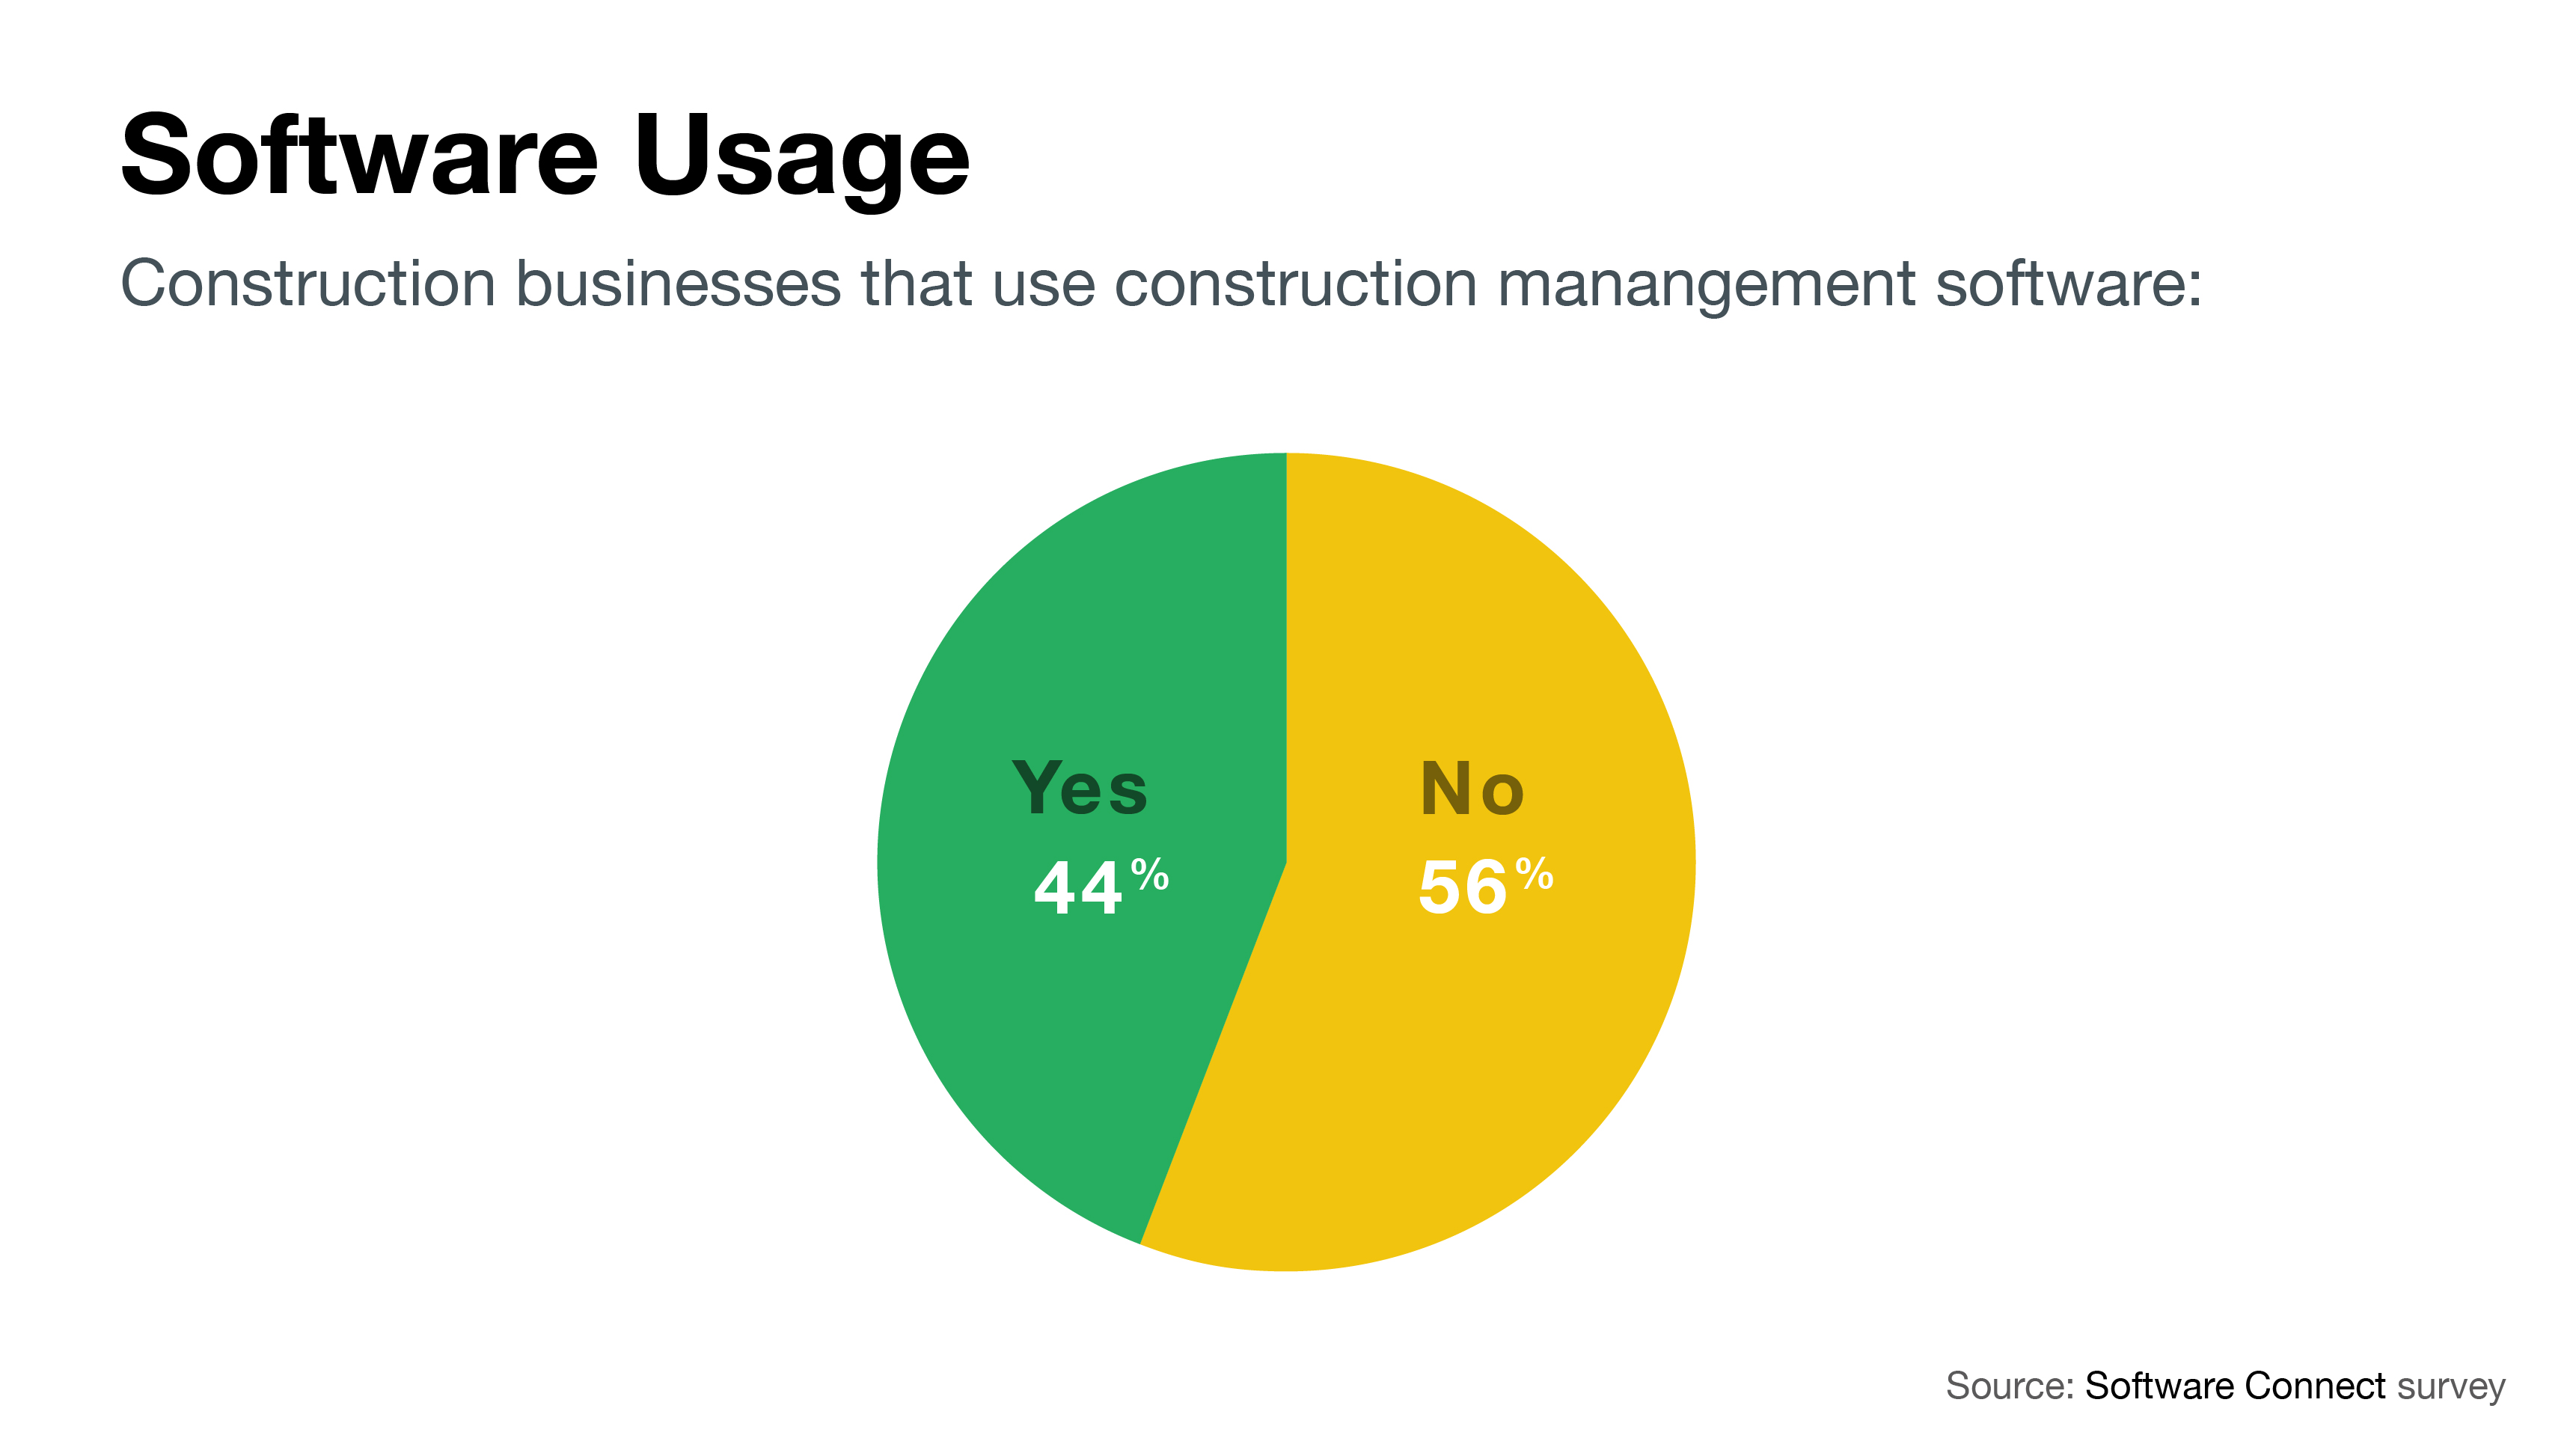 56% of construction businesses use construction management software